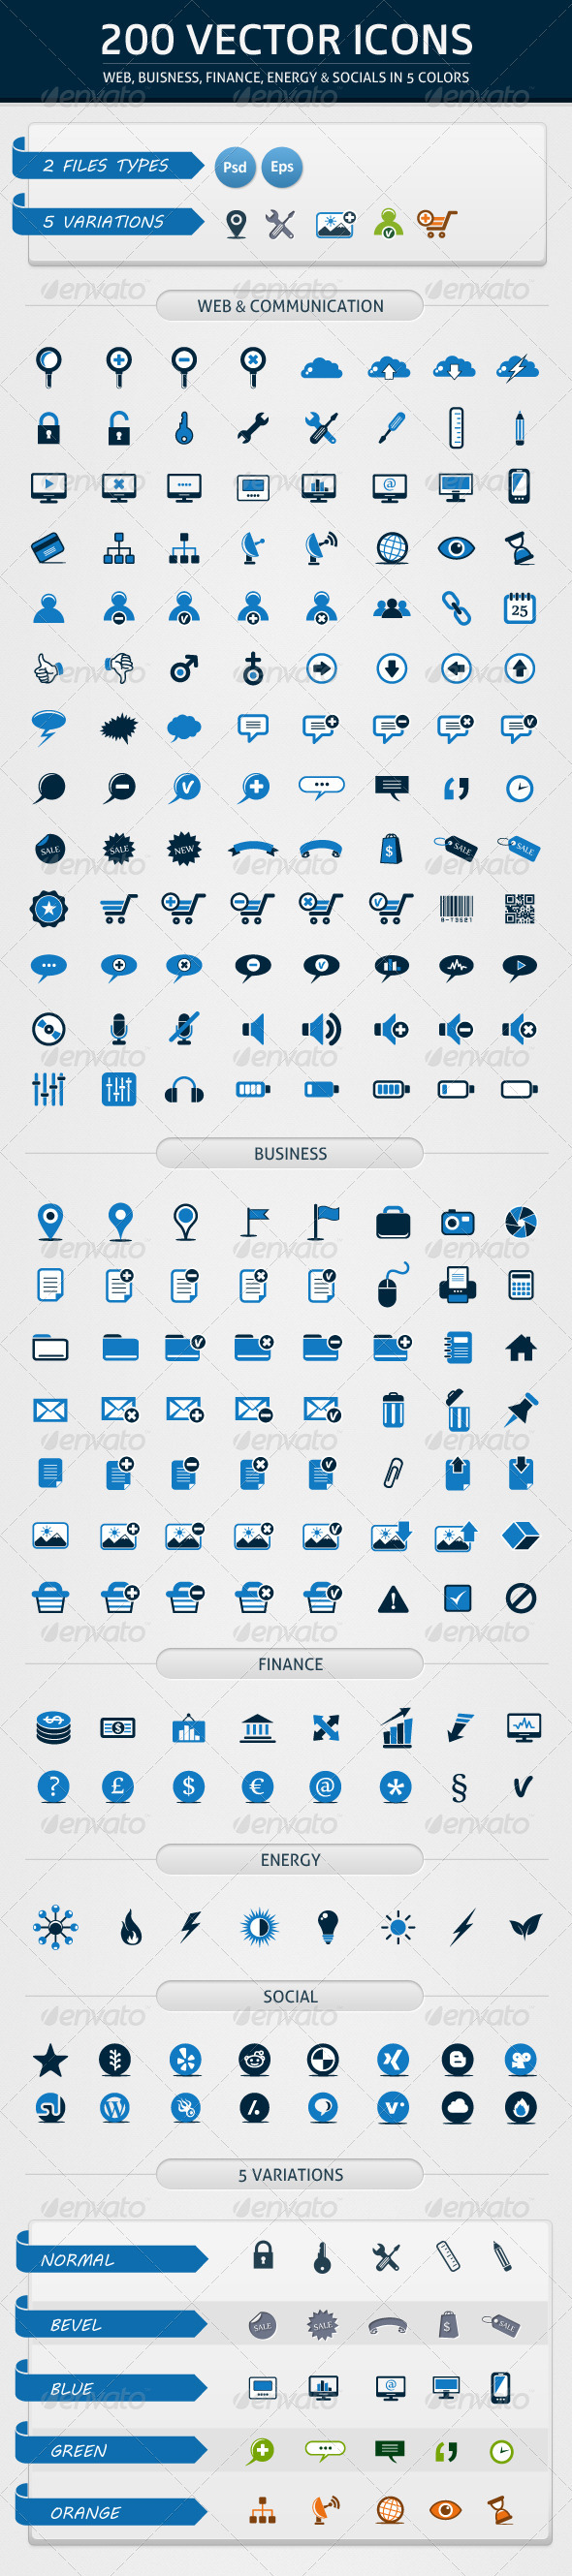 GraphicRiver 200 Vector Icons in 5 Colors 2682311